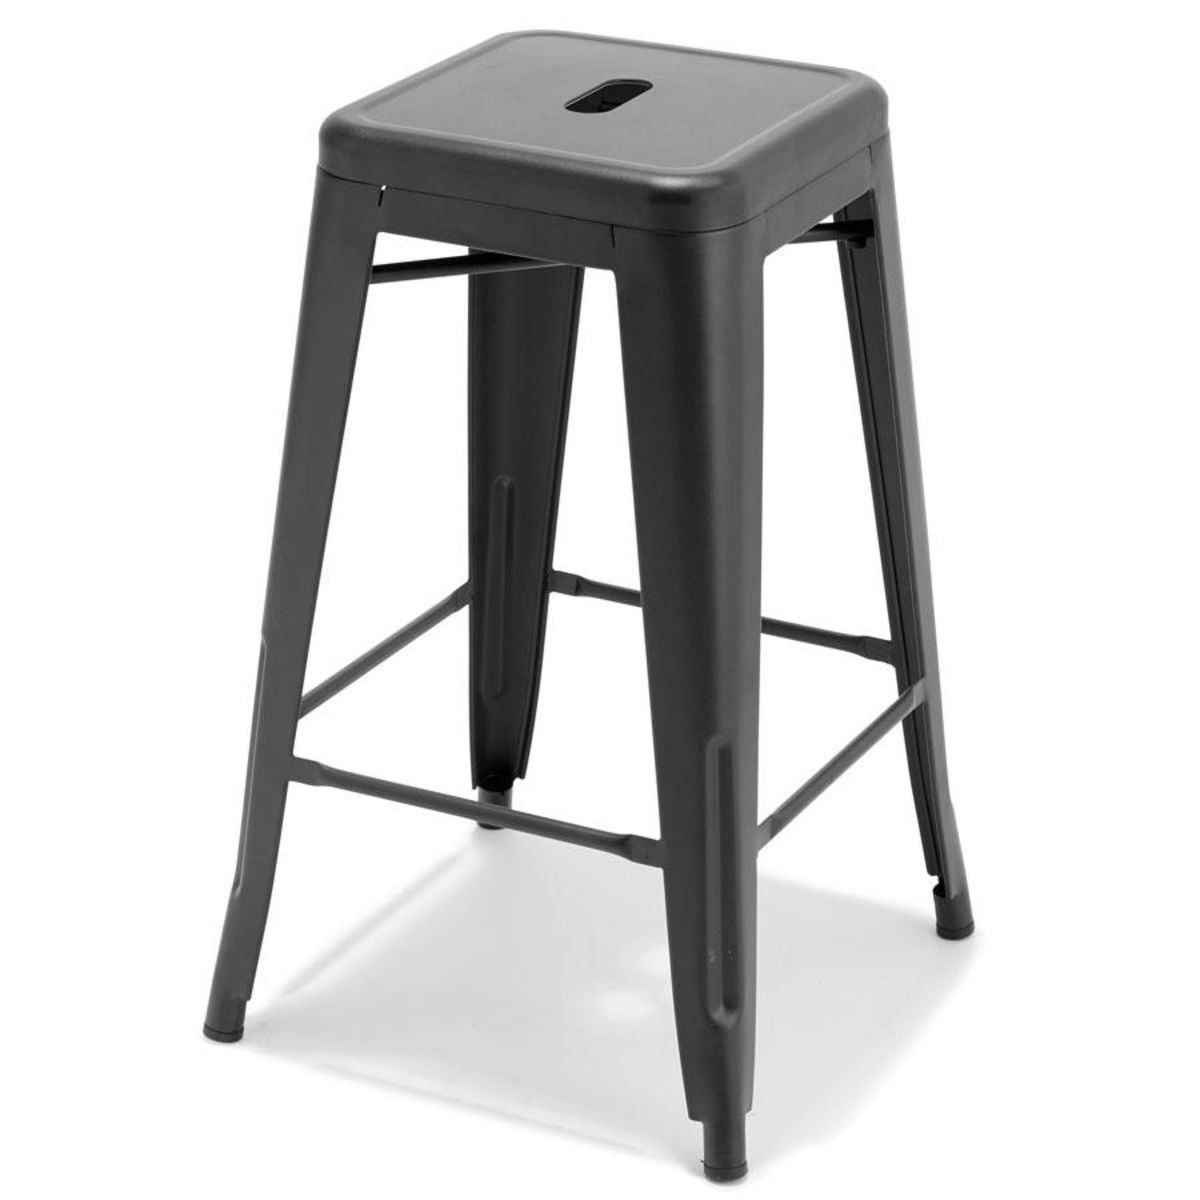 Awe Inspiring Metal Bar Stool Black Metal Bar Stools Black Bar Stools Caraccident5 Cool Chair Designs And Ideas Caraccident5Info